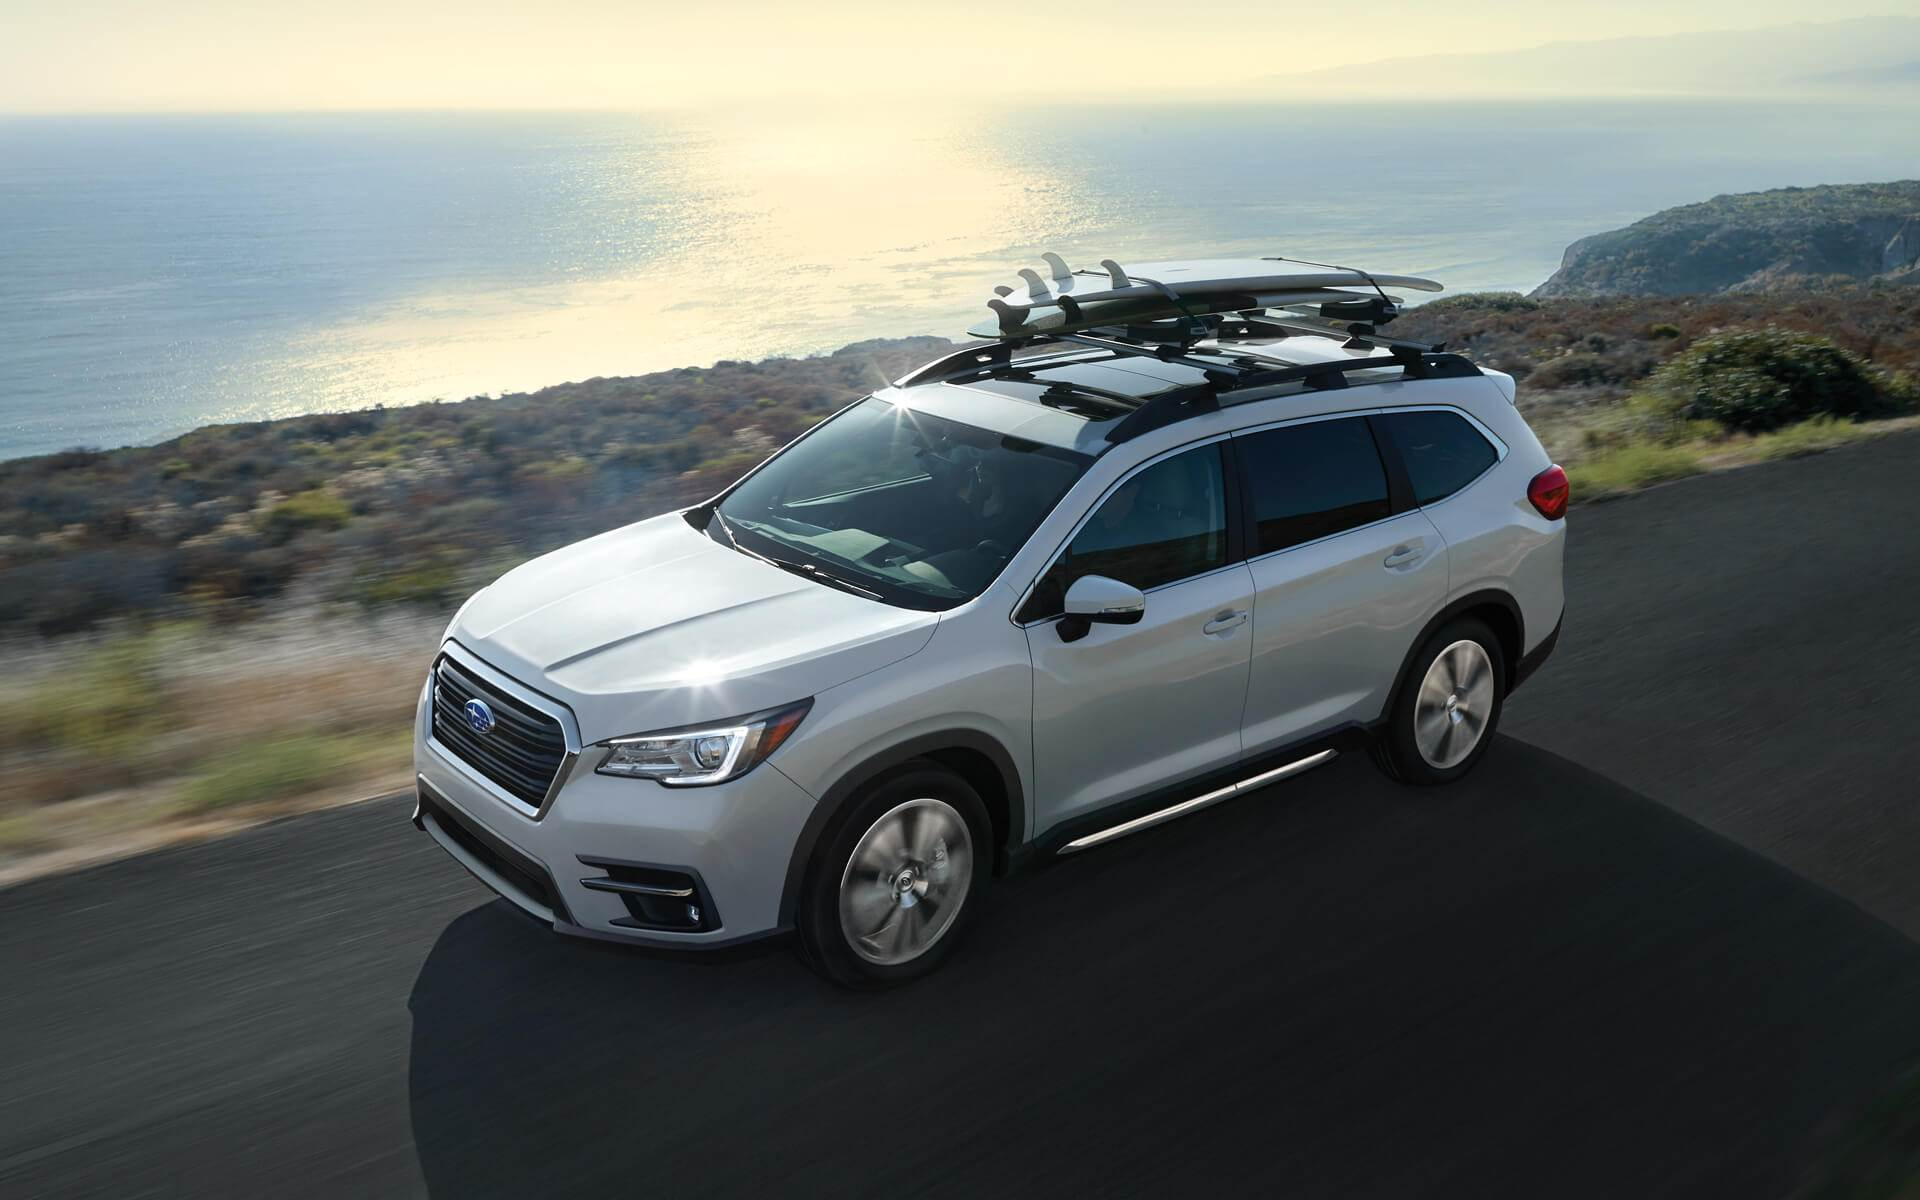 2020 Subaru Ascent Arriving in Bay City Soon